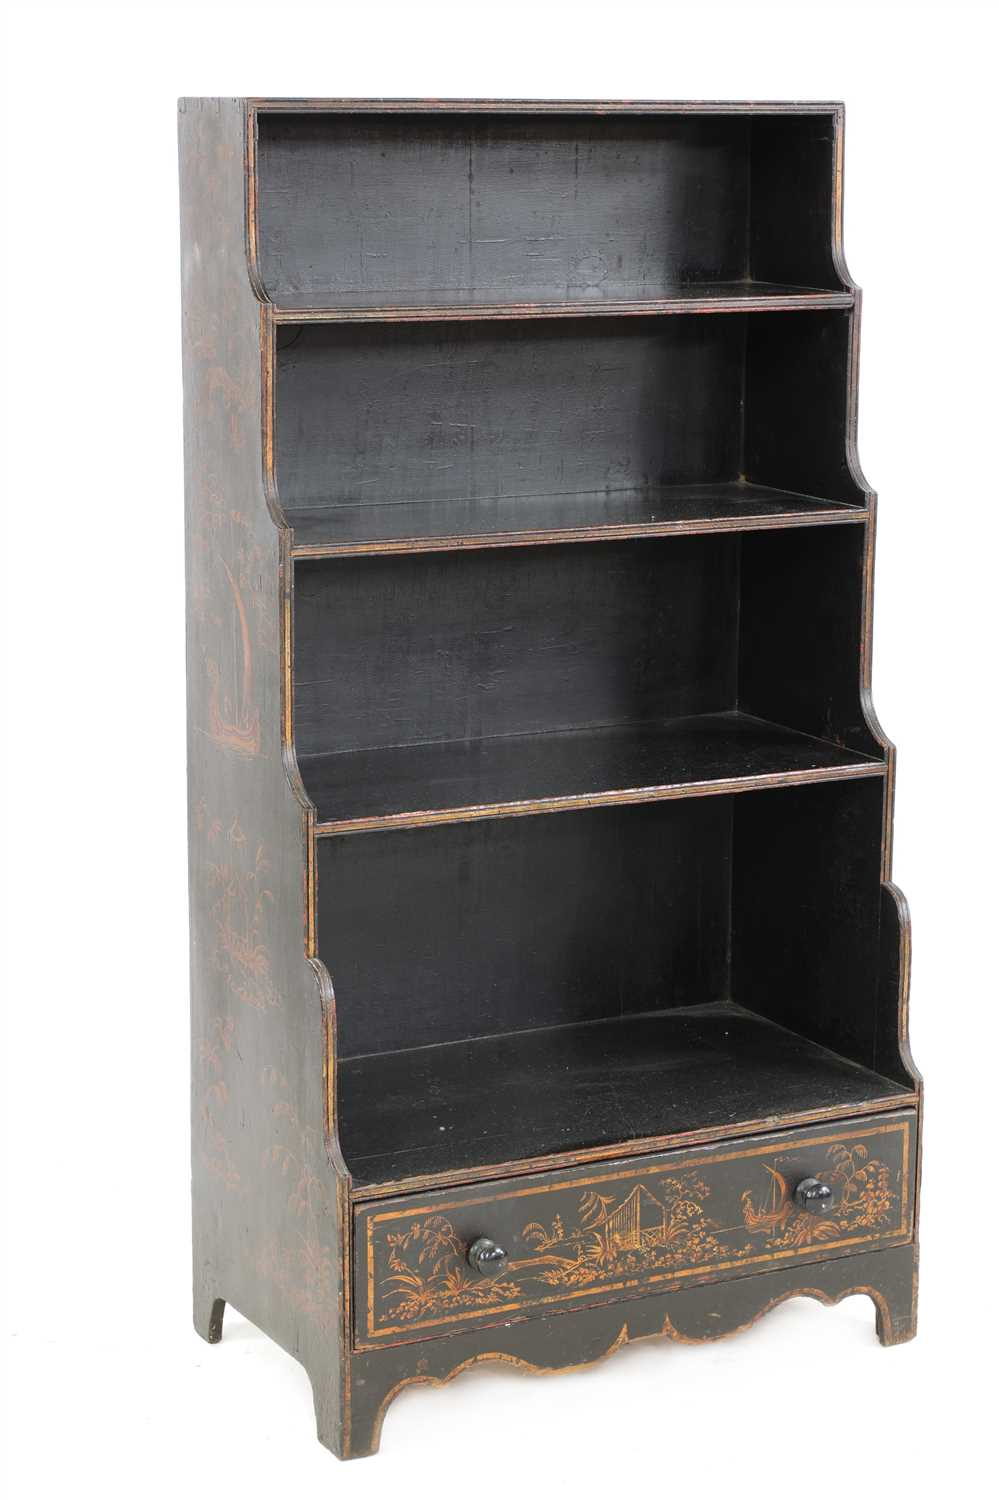 Lot 713-A Regency black lacquered and gilt chinoiserie waterfall bookcase